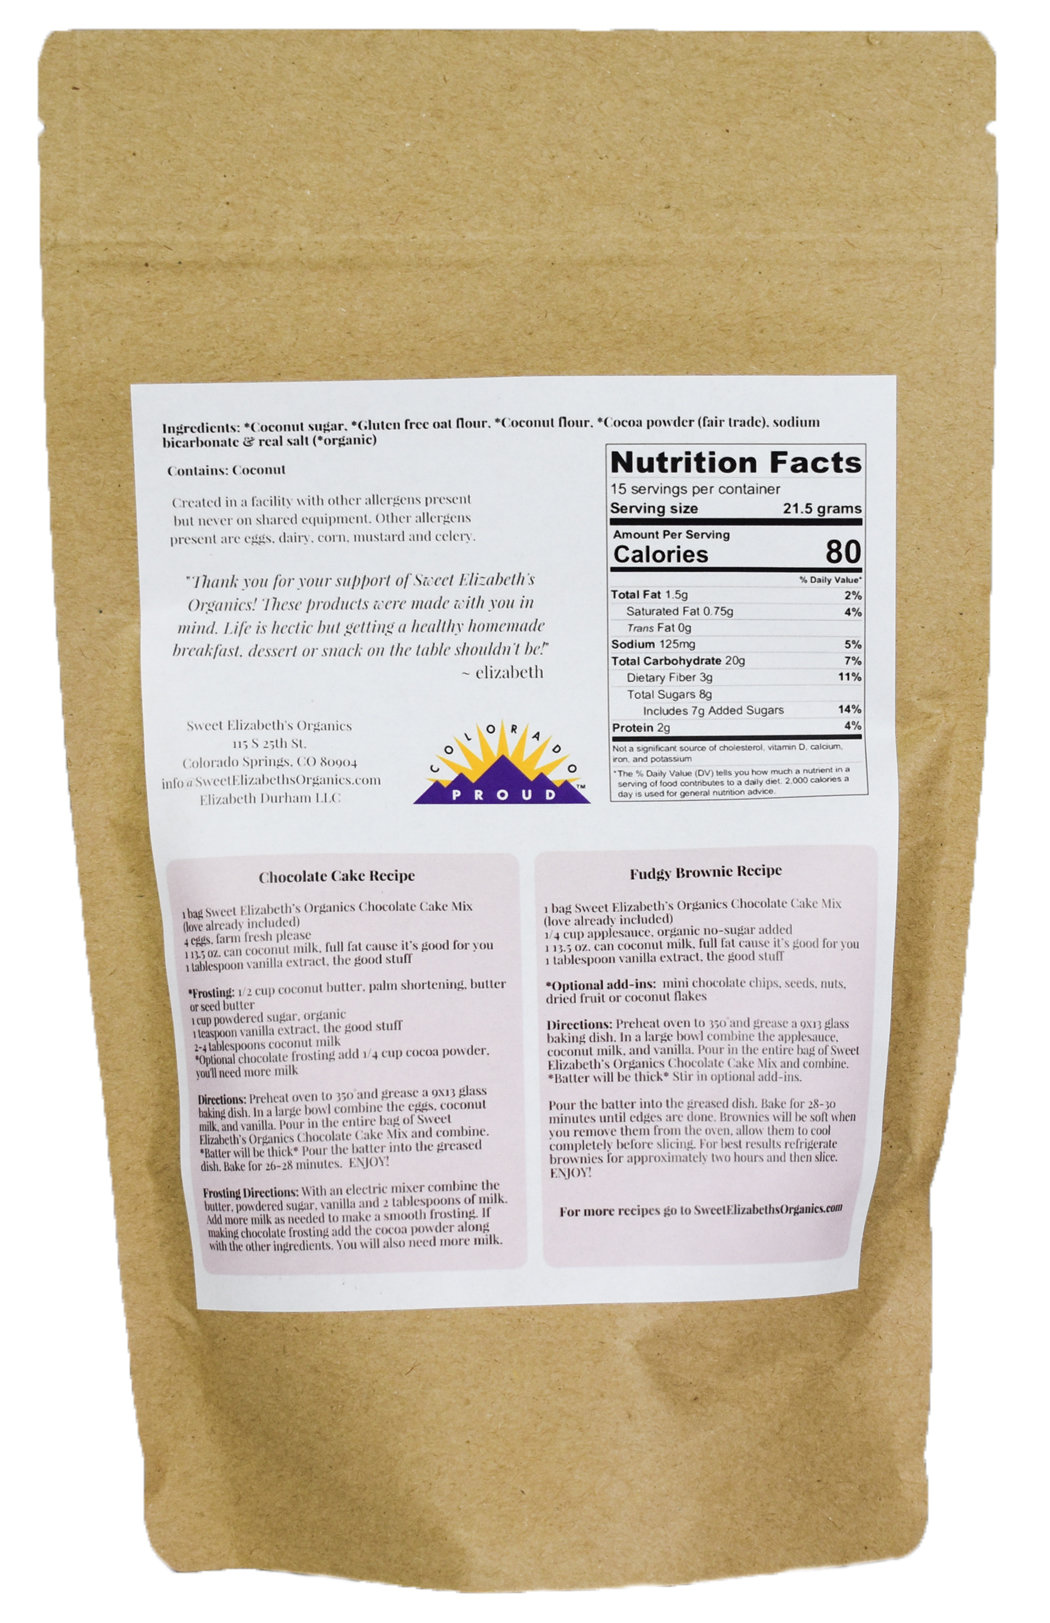 Recipes & Nutrition Facts